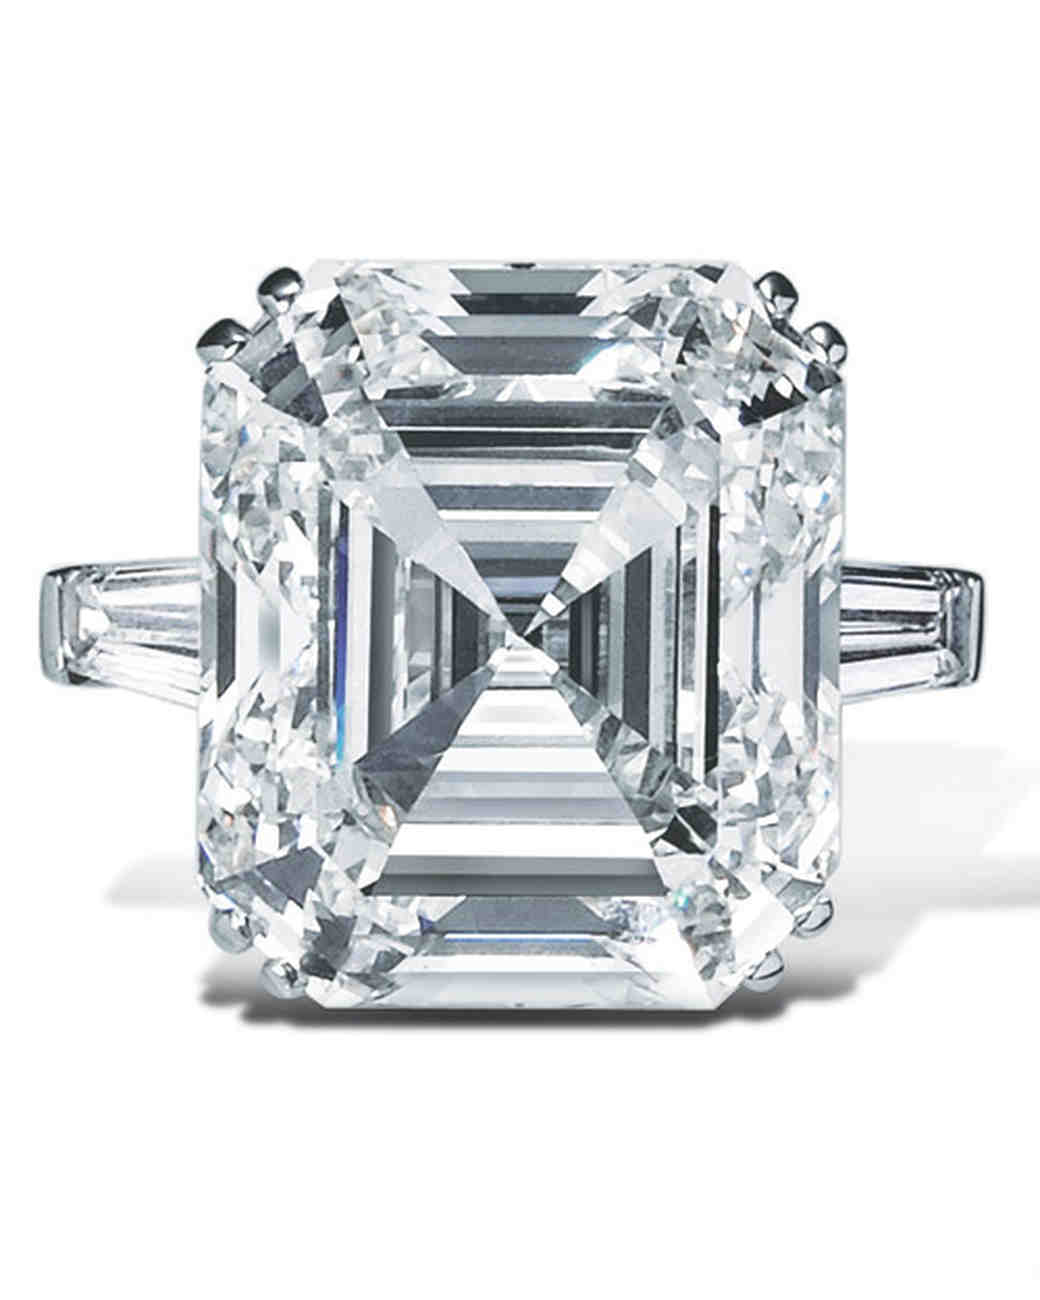 asscher diamond cut index jewelry loose fantastic b colorless